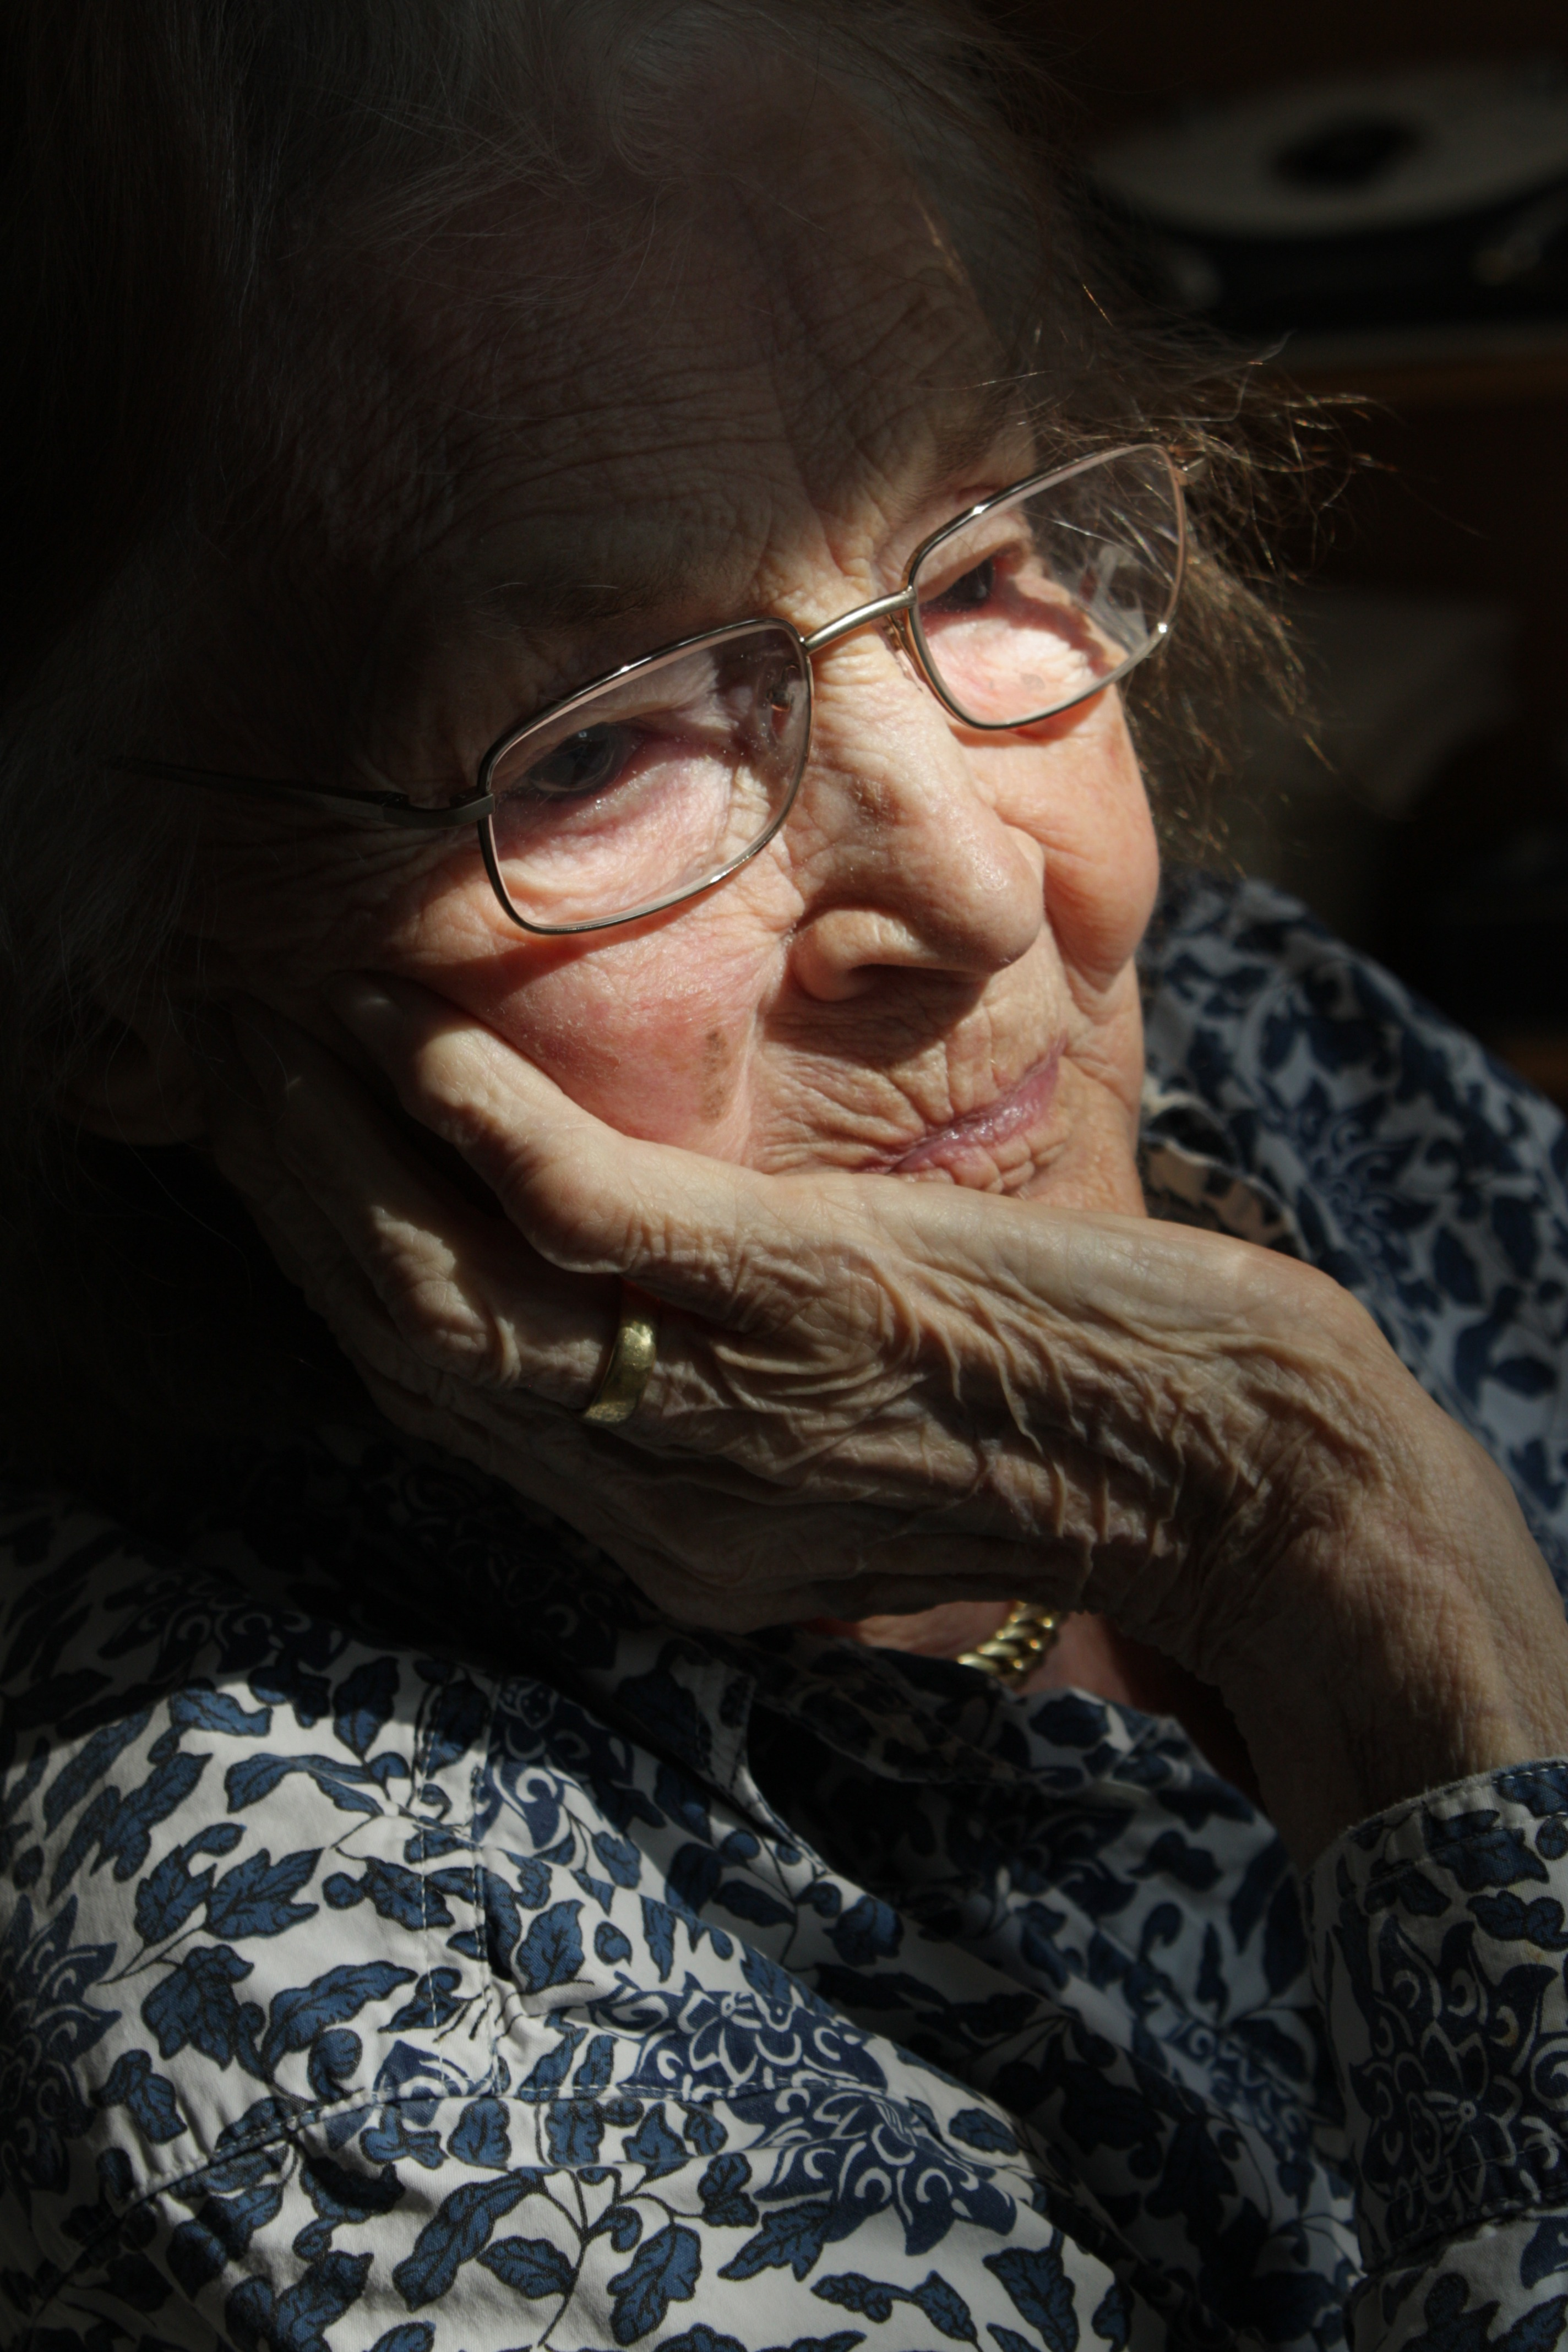 Elderly woman sitting in a ray of light.